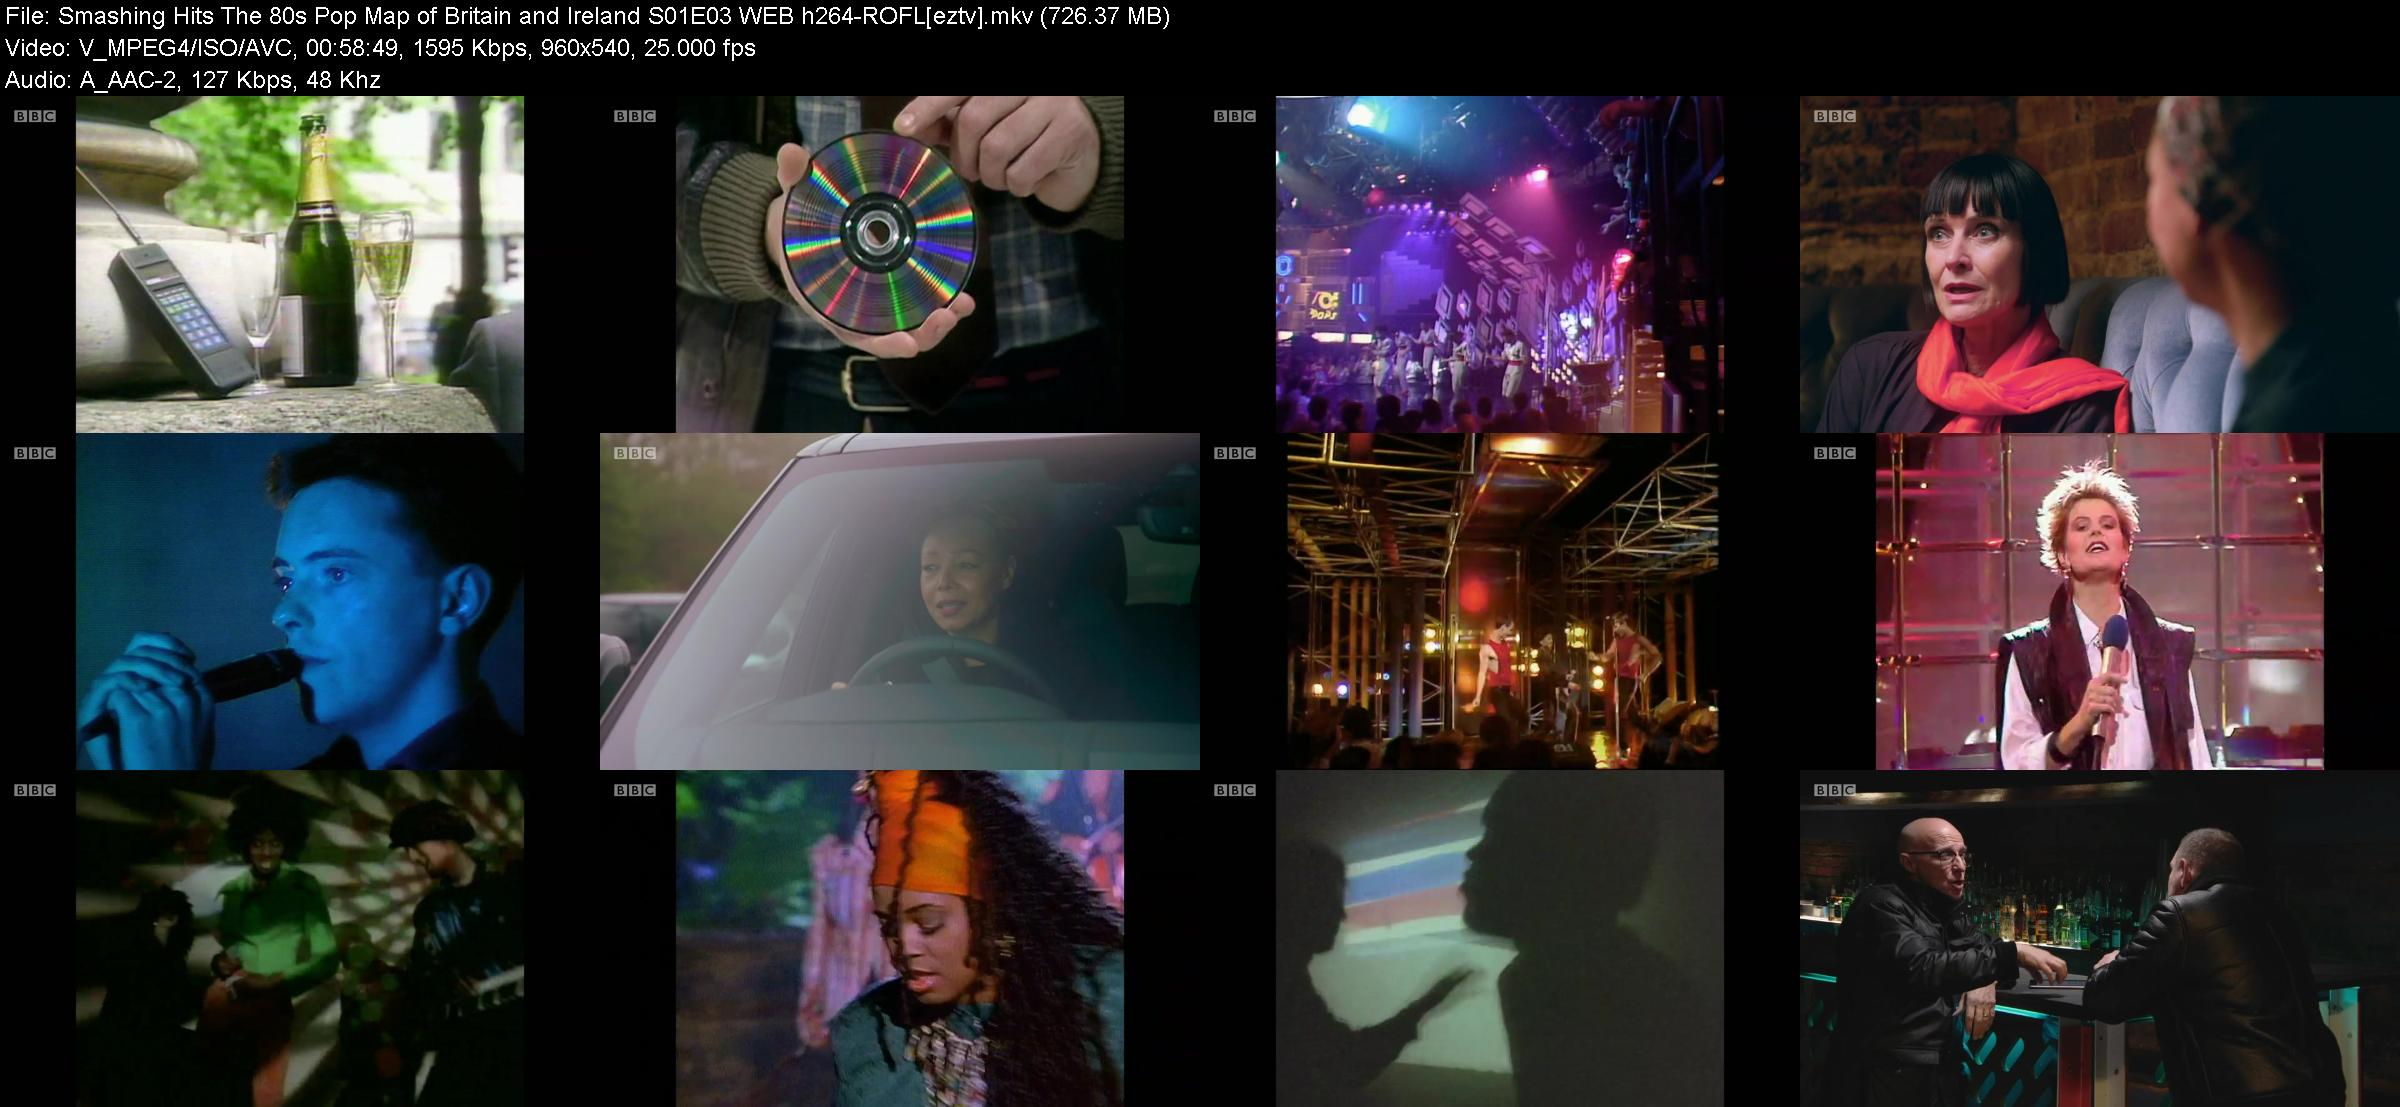 Smashing Hits The 80s Pop Map of Britain and Ireland S01E03 WEB h264 ROFL